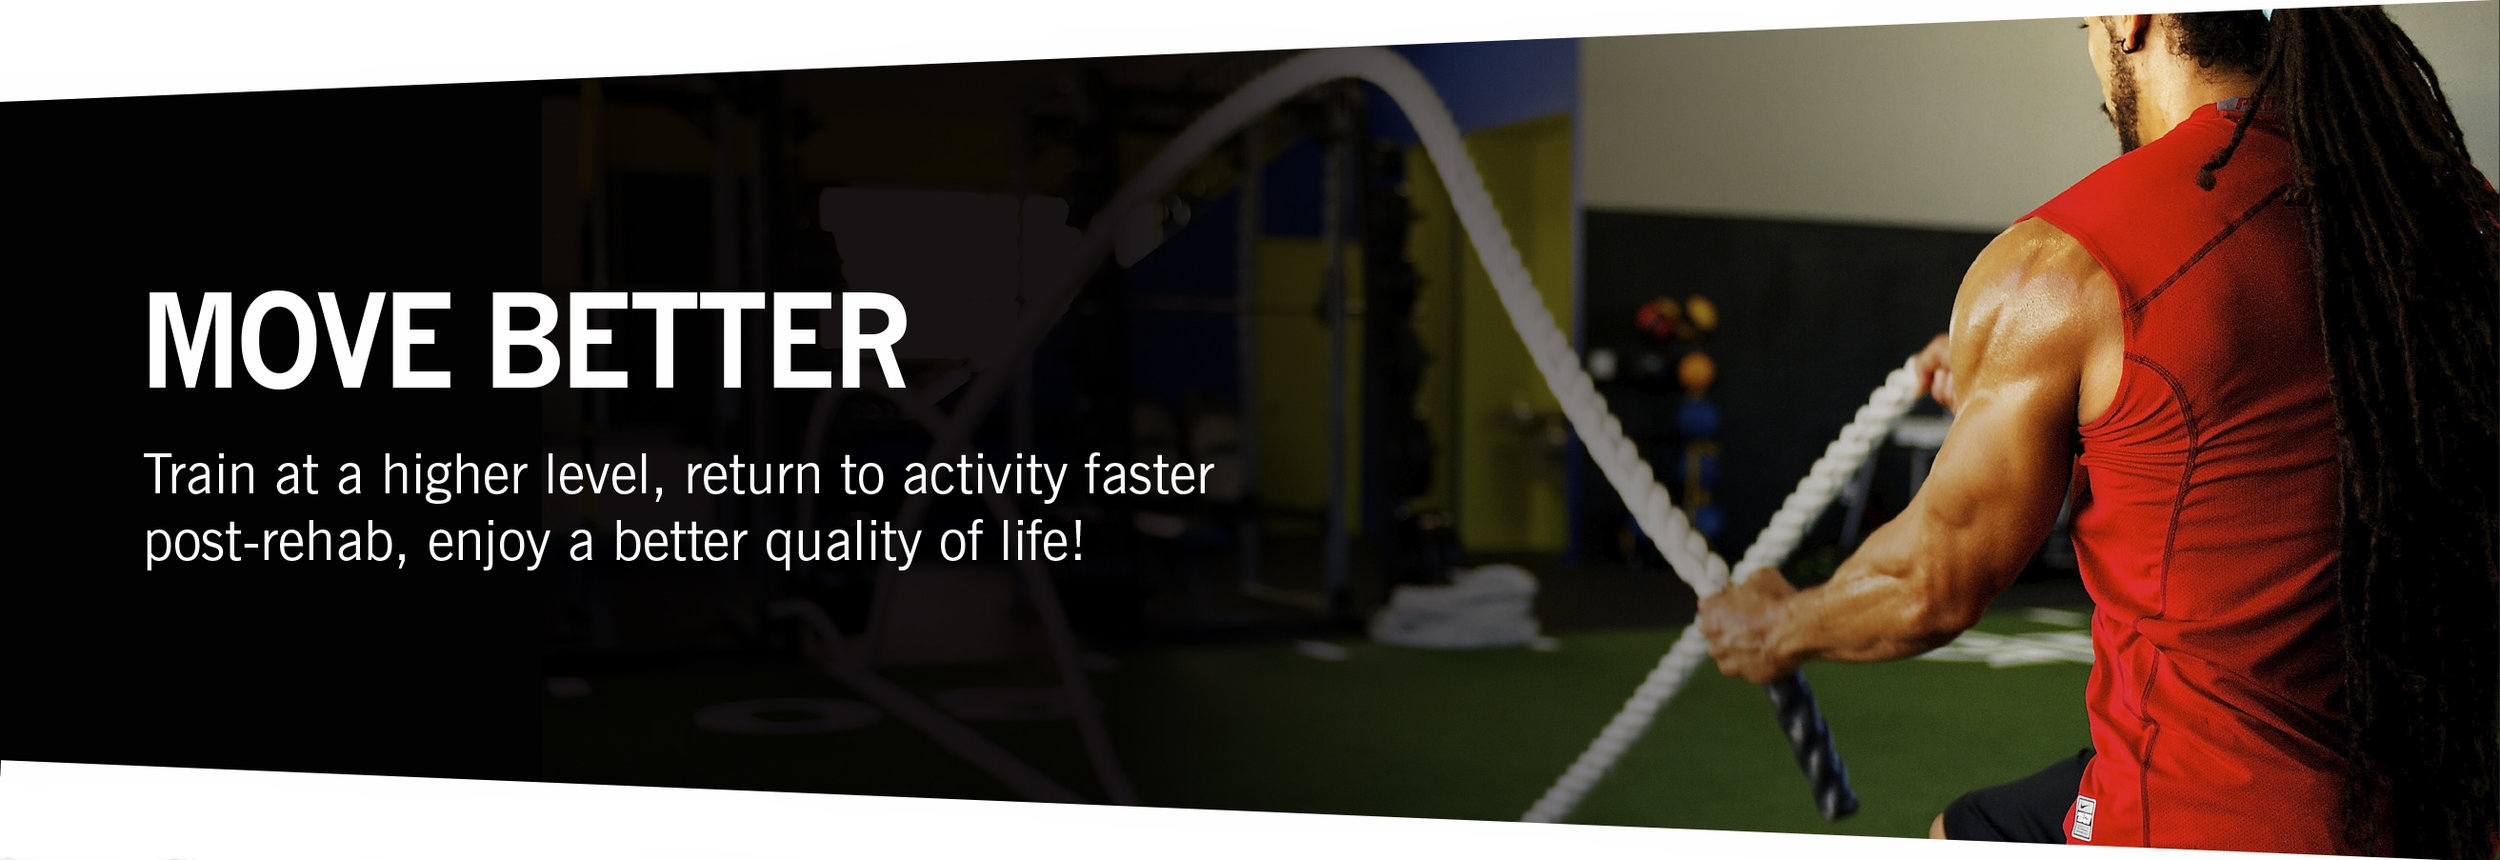 move better with 1-on-1 personal training and online coaching